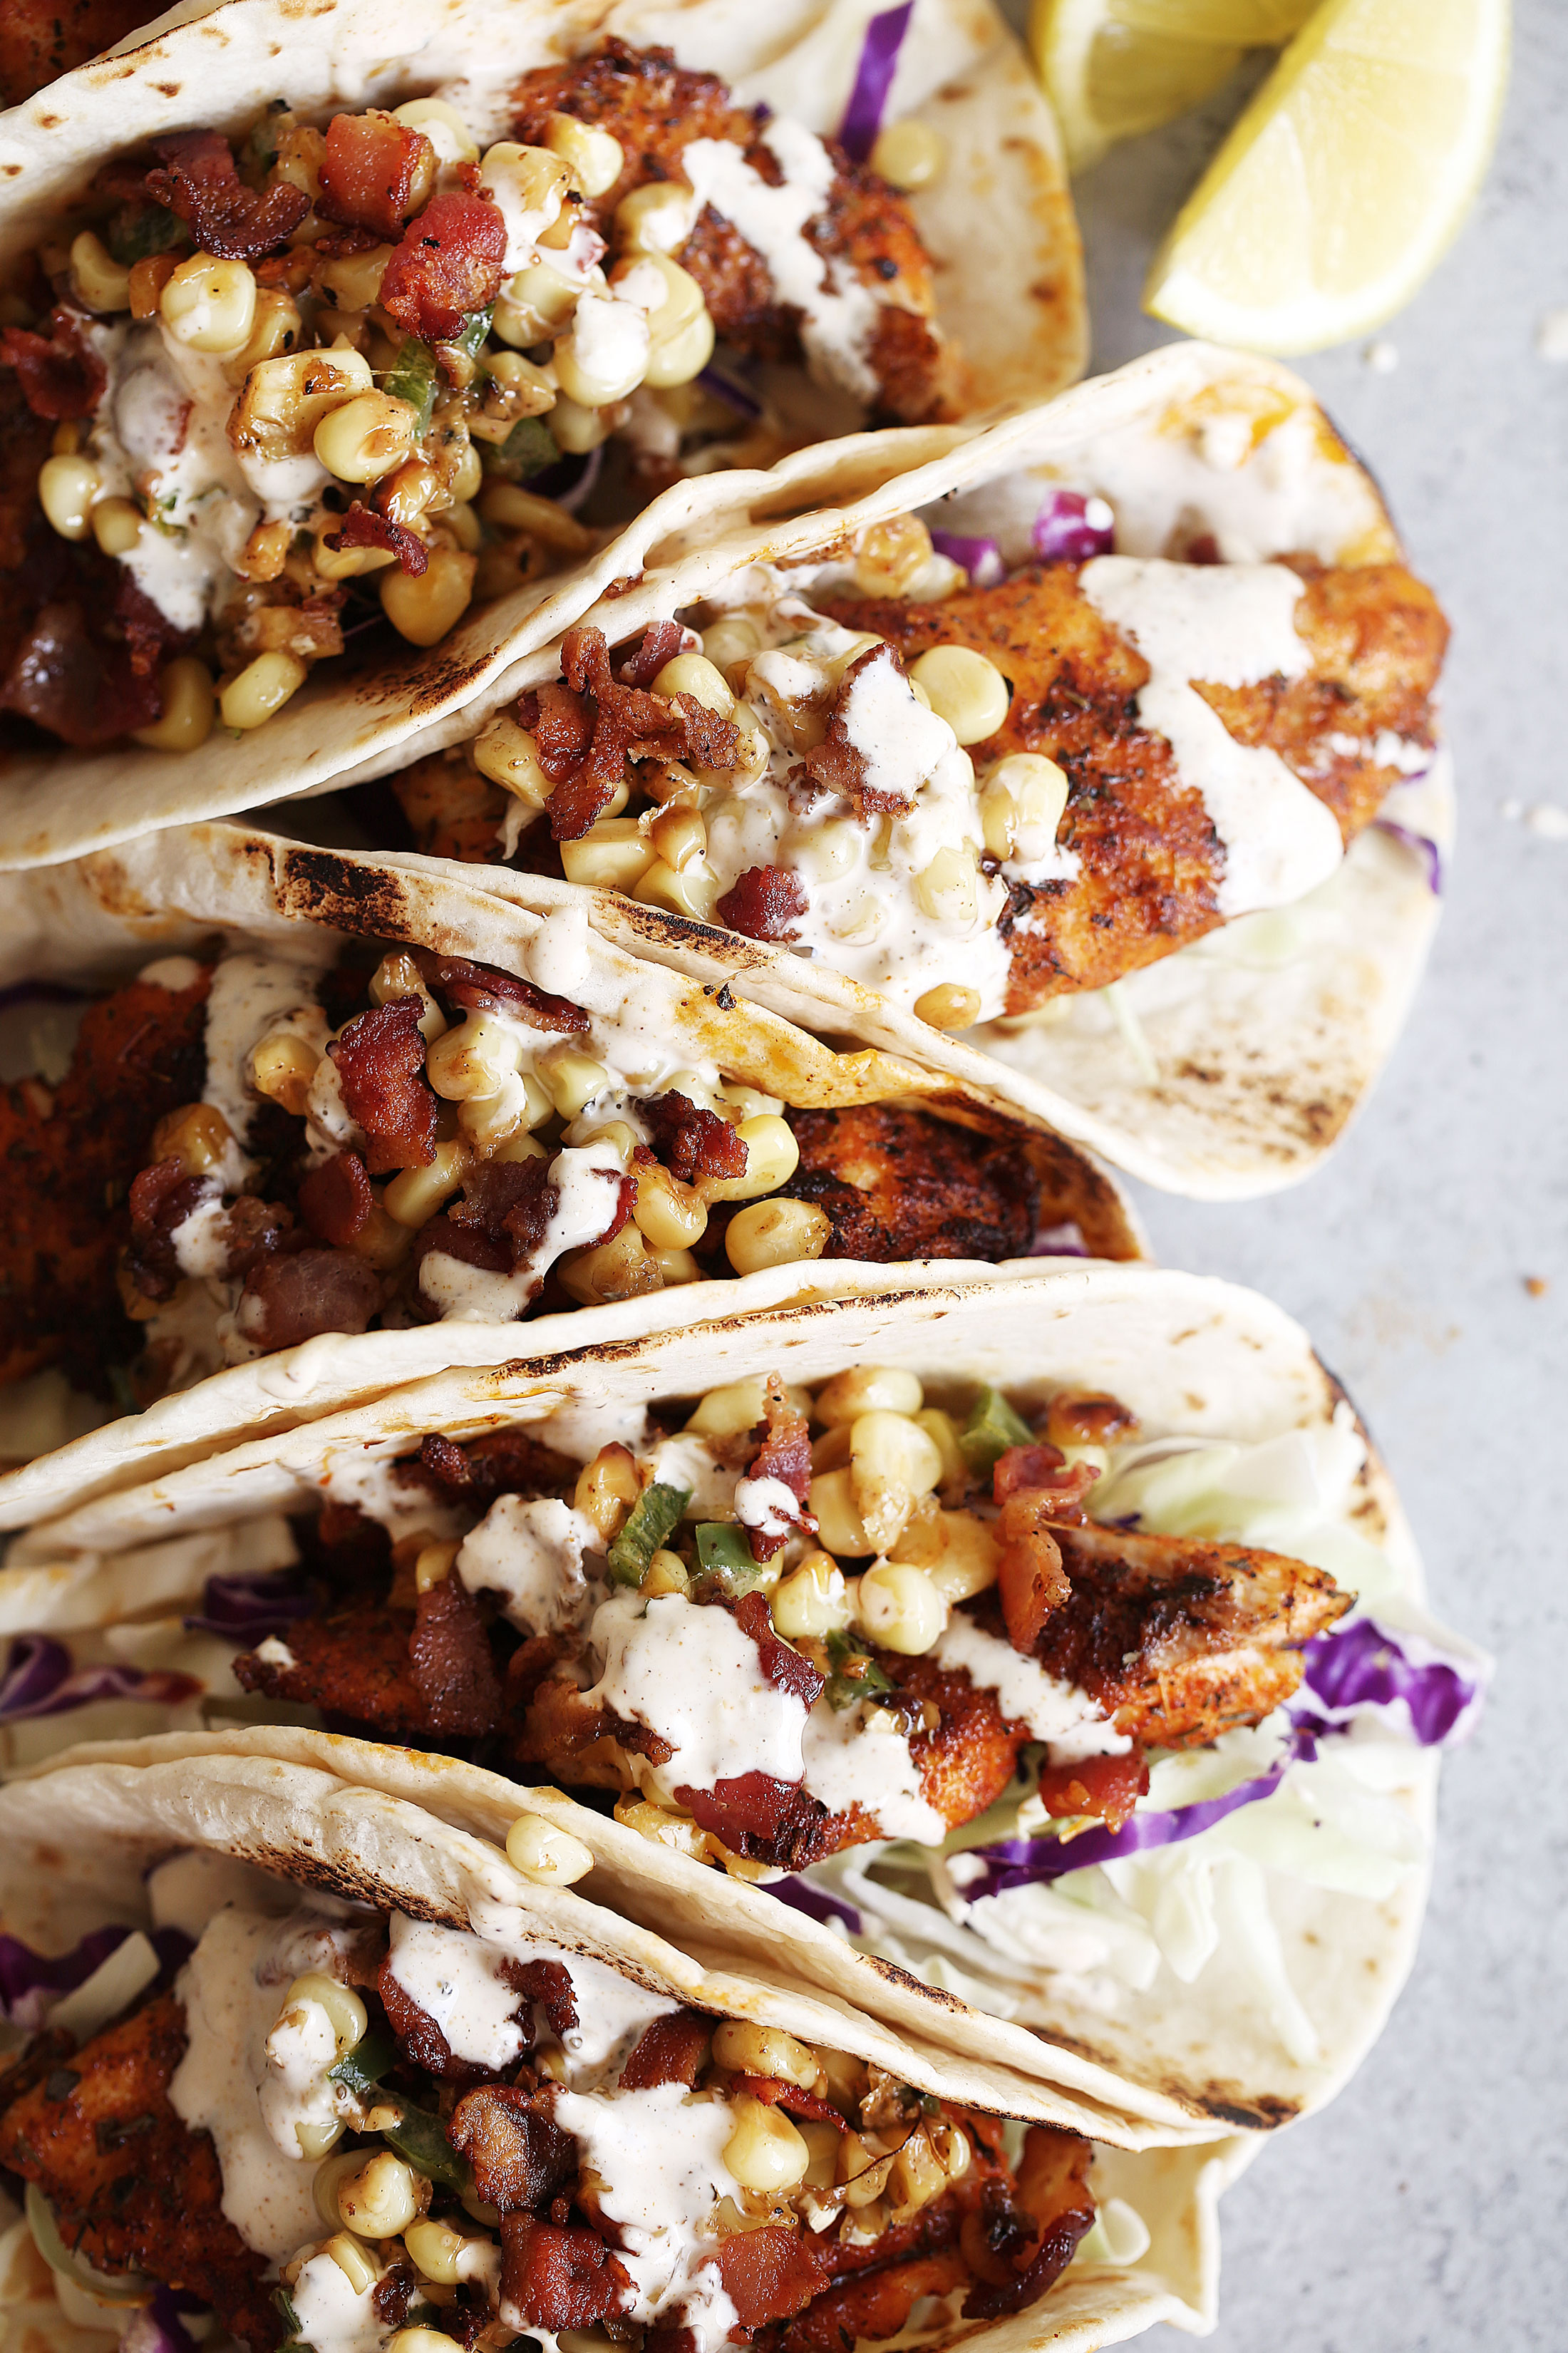 southern style blackened catfish tacos with fried corn and old bay aioli